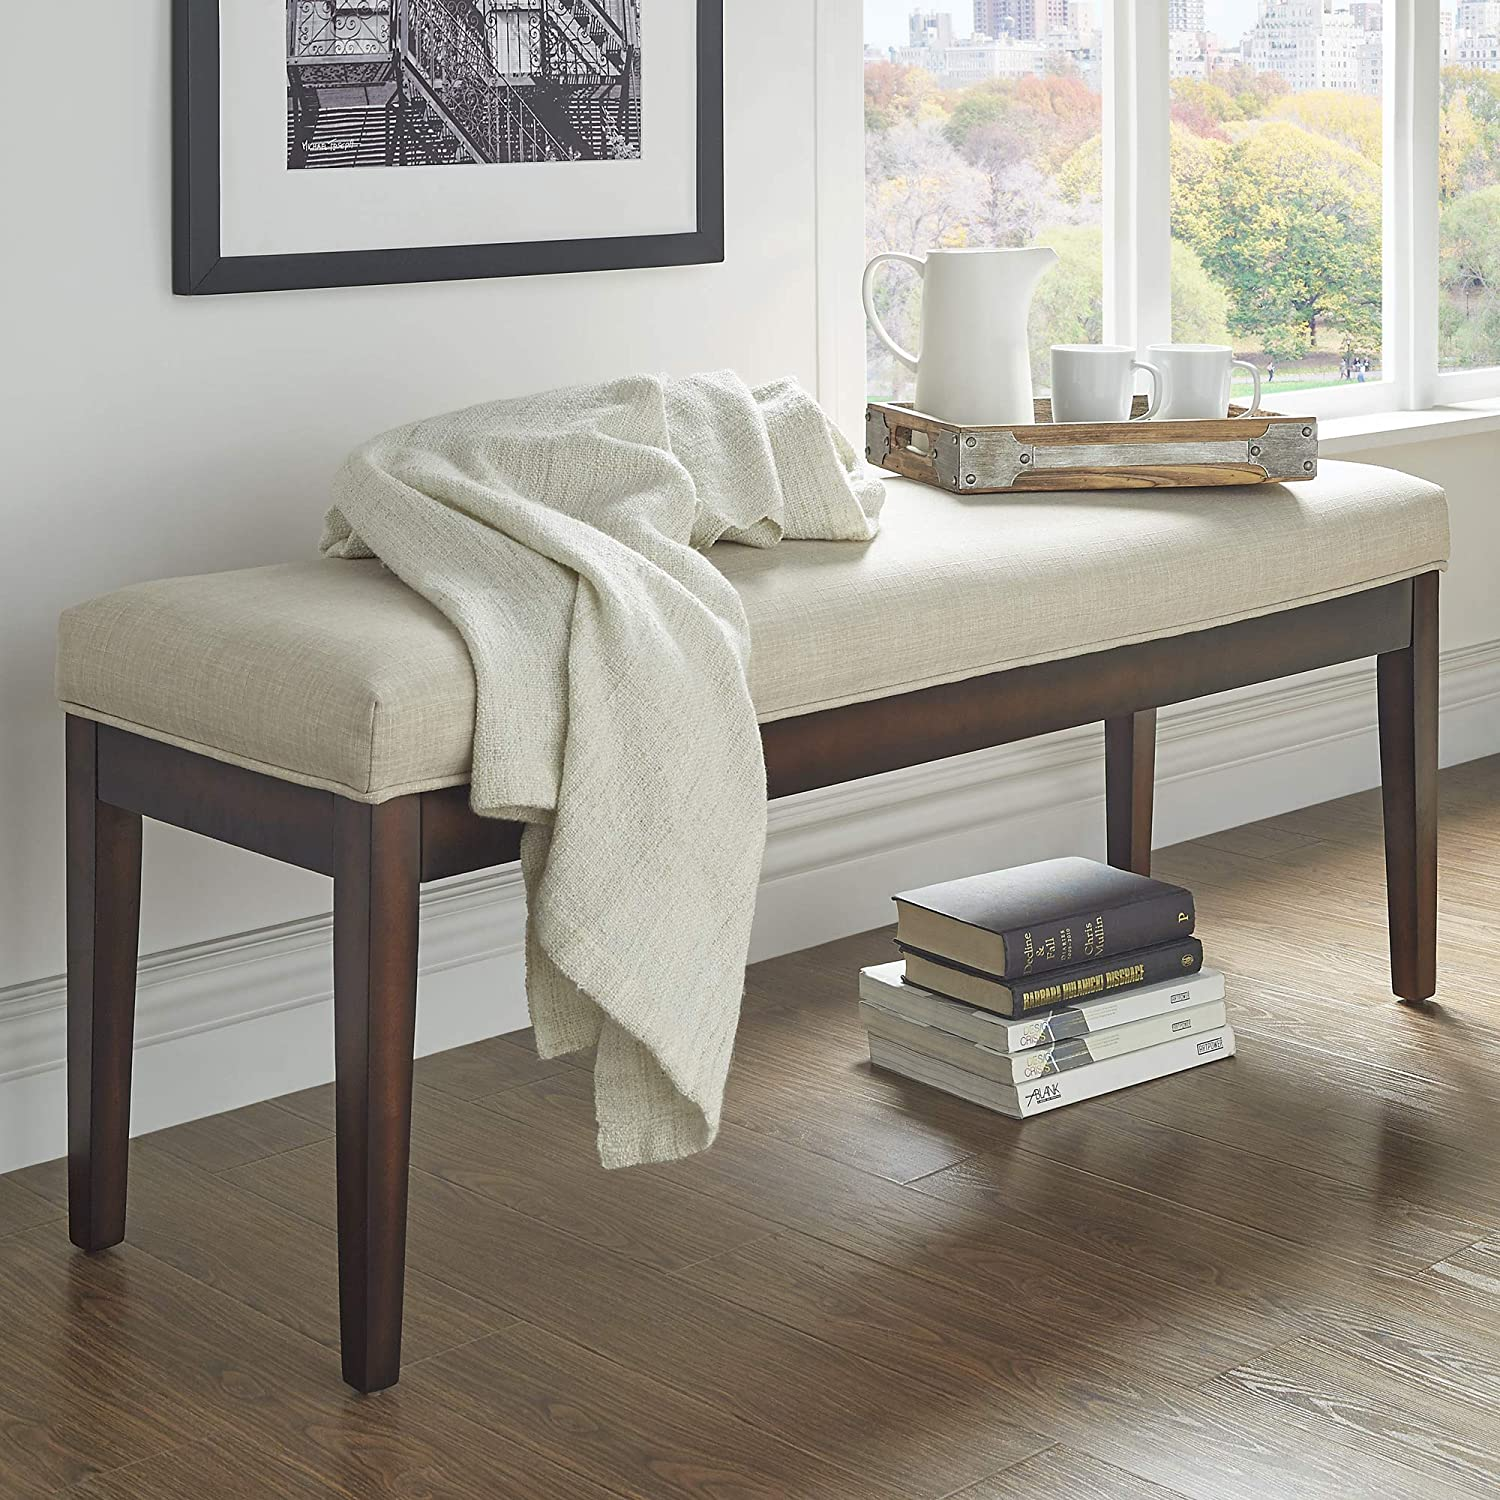 Linen bench entryway furniture beige made from rubberwood foam construction cushion wood elements upholstery wood framing bundle with our expert